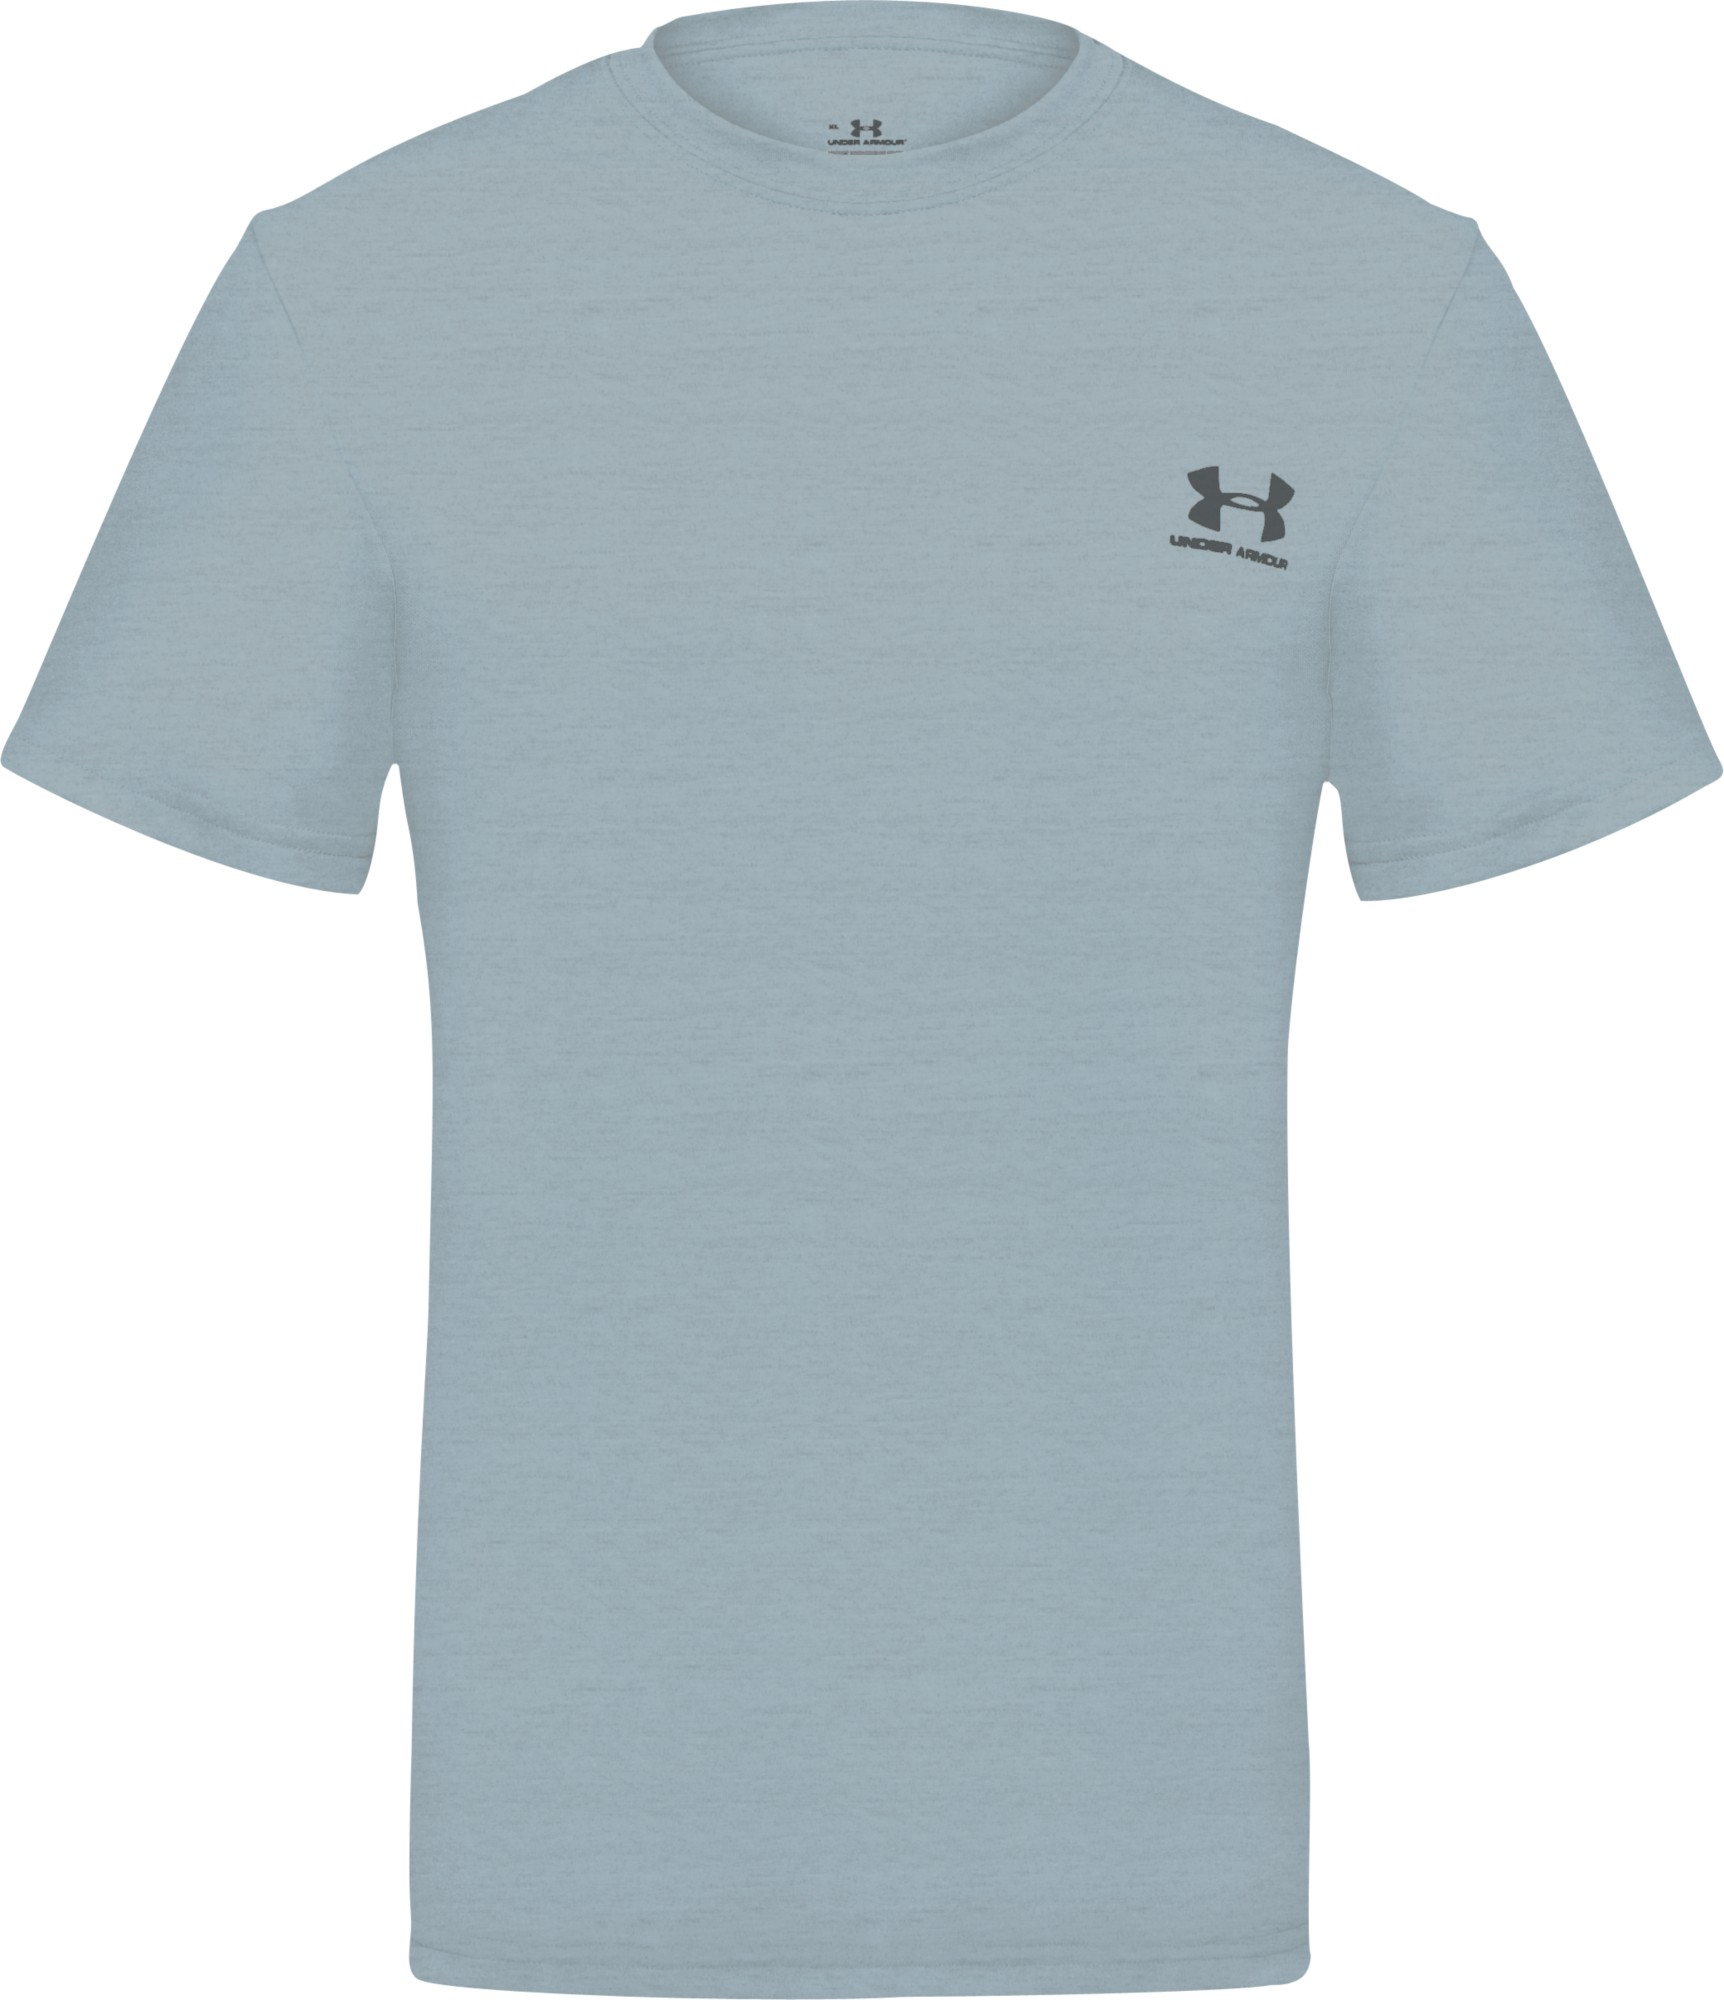 Under Armour HeatGear Shortsleeve T